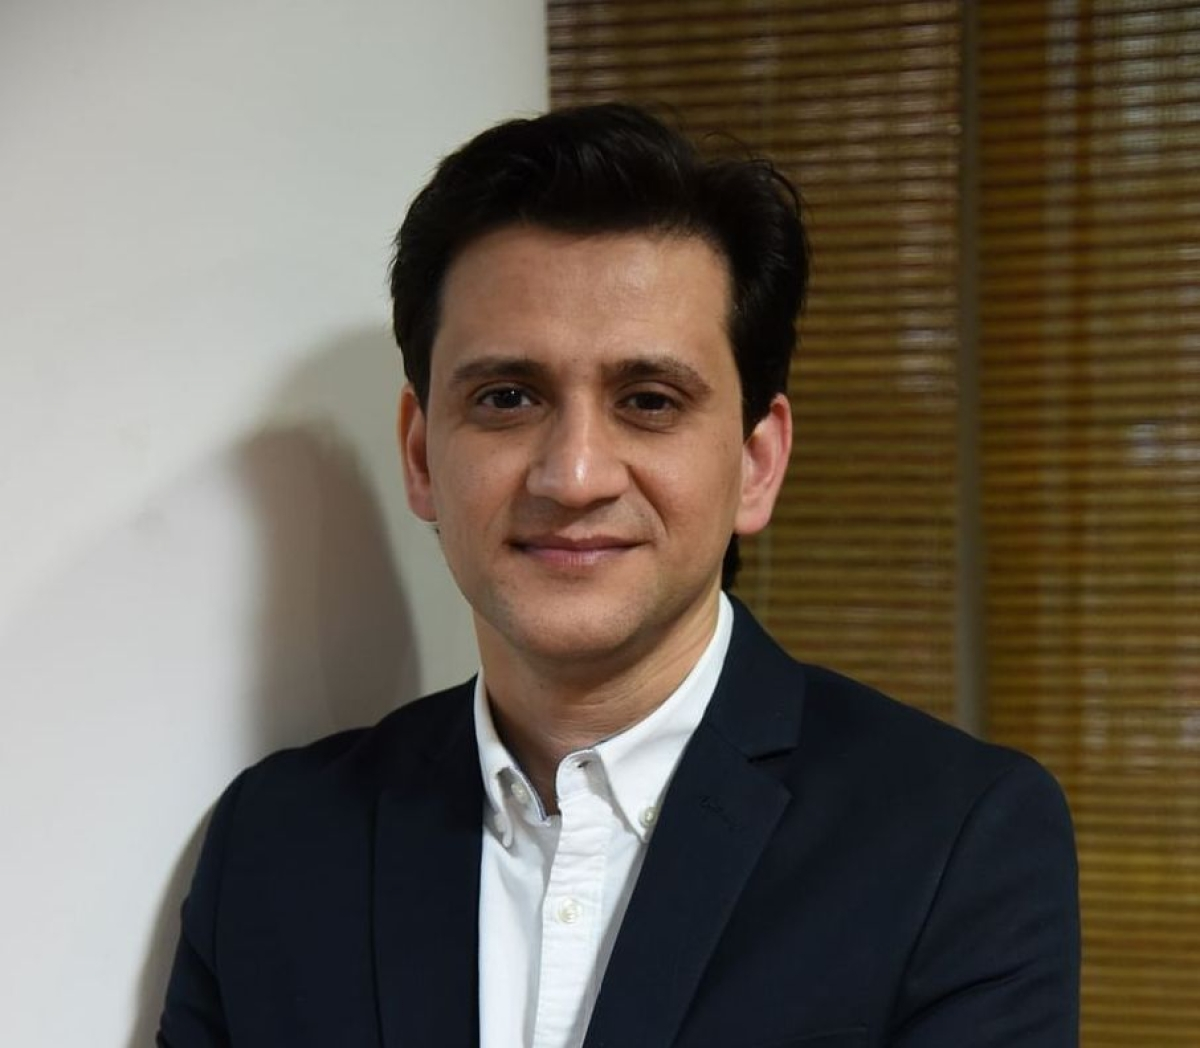 Rohit Kapoor, director marketing, Perfetti Van Melle India